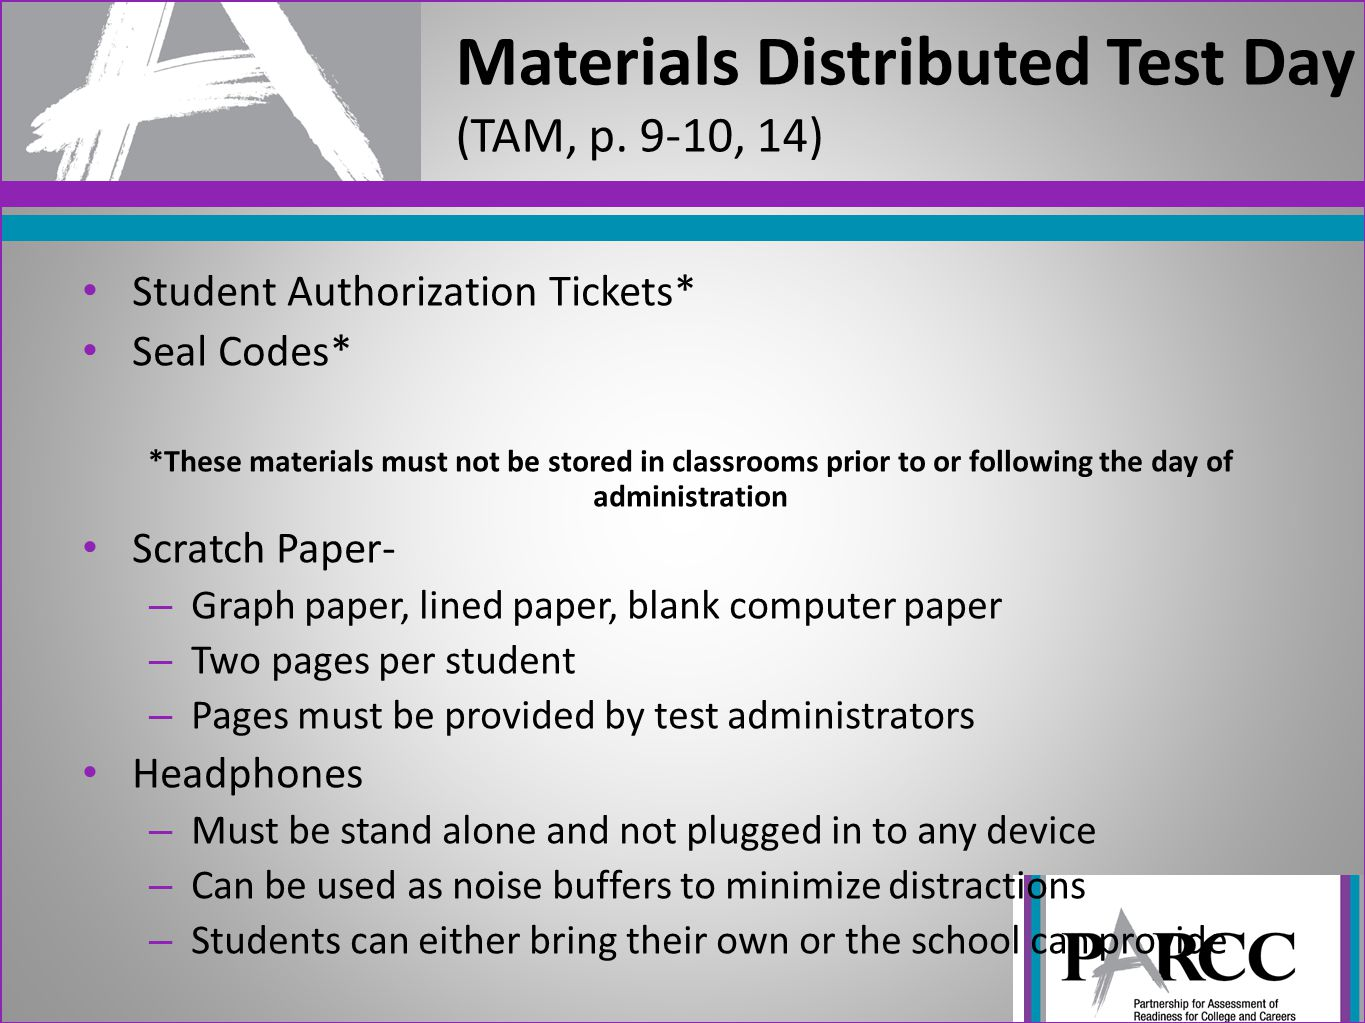 Materials Distributed Test Day (TAM, p. 9-10, 14)